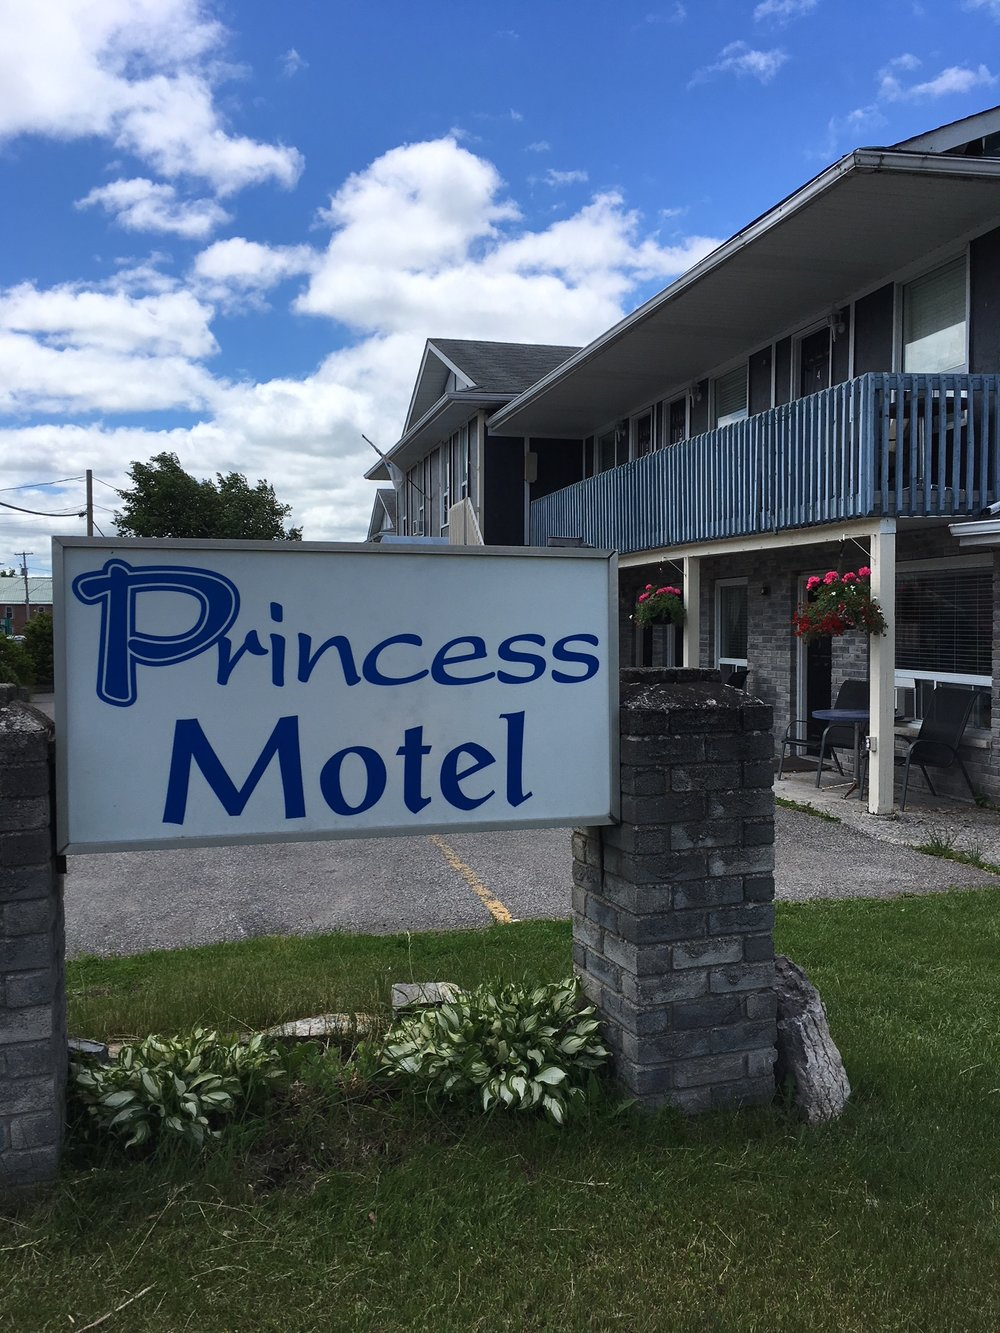 Princess Motel.JPG